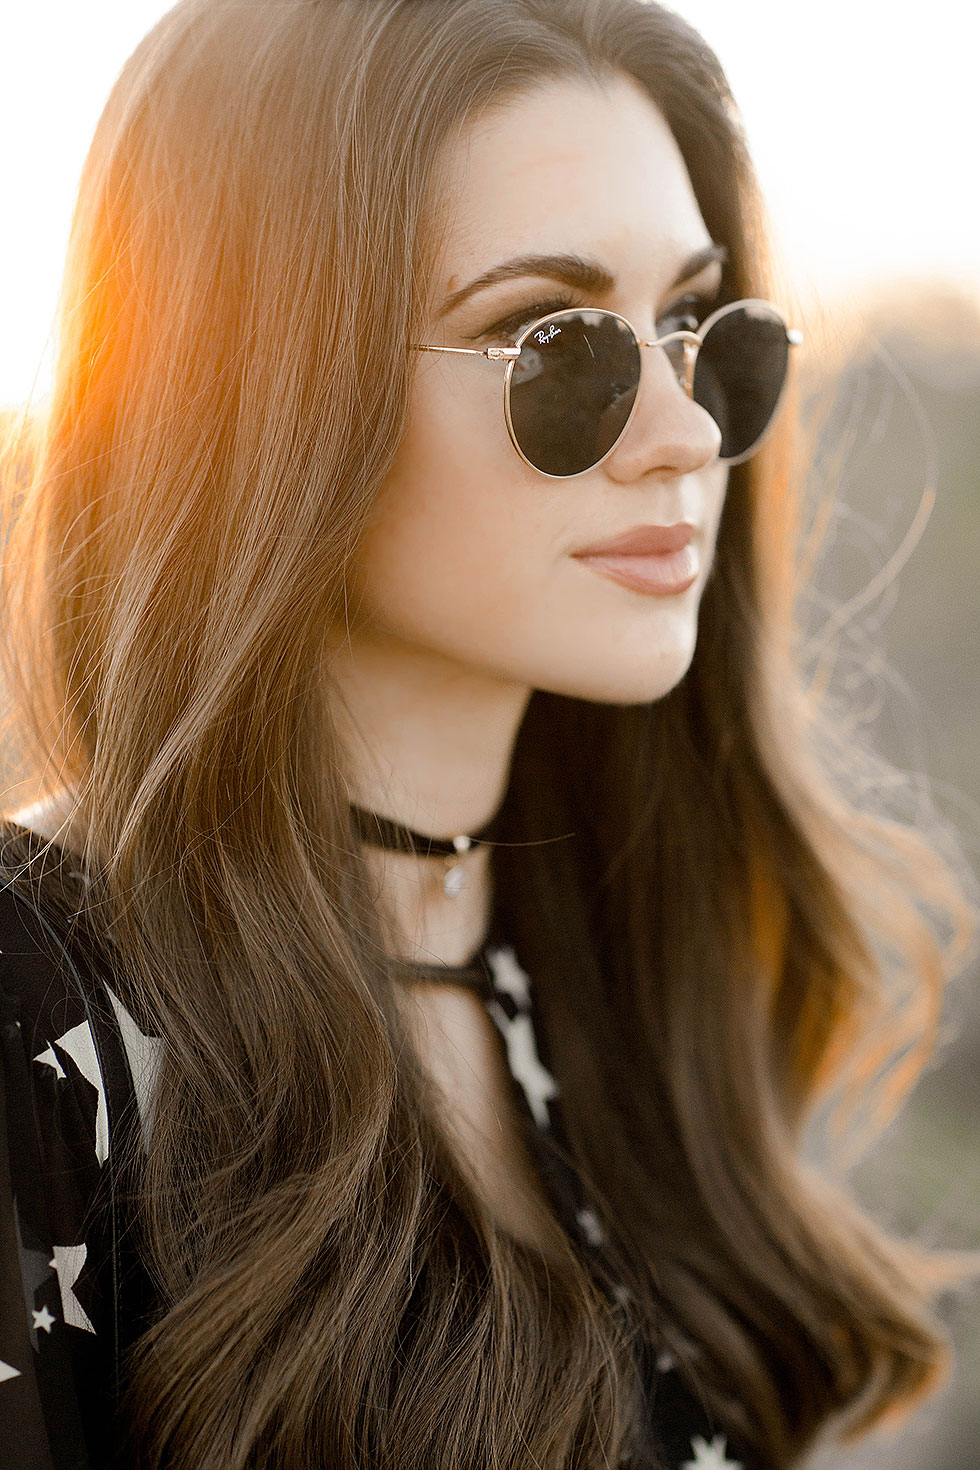 festival style casual long sleeve spring dress --- Ray Ban 50mm Retro Round Metal Sunglasses, LOVERS + FRIENDS Lana Dress in Star Print